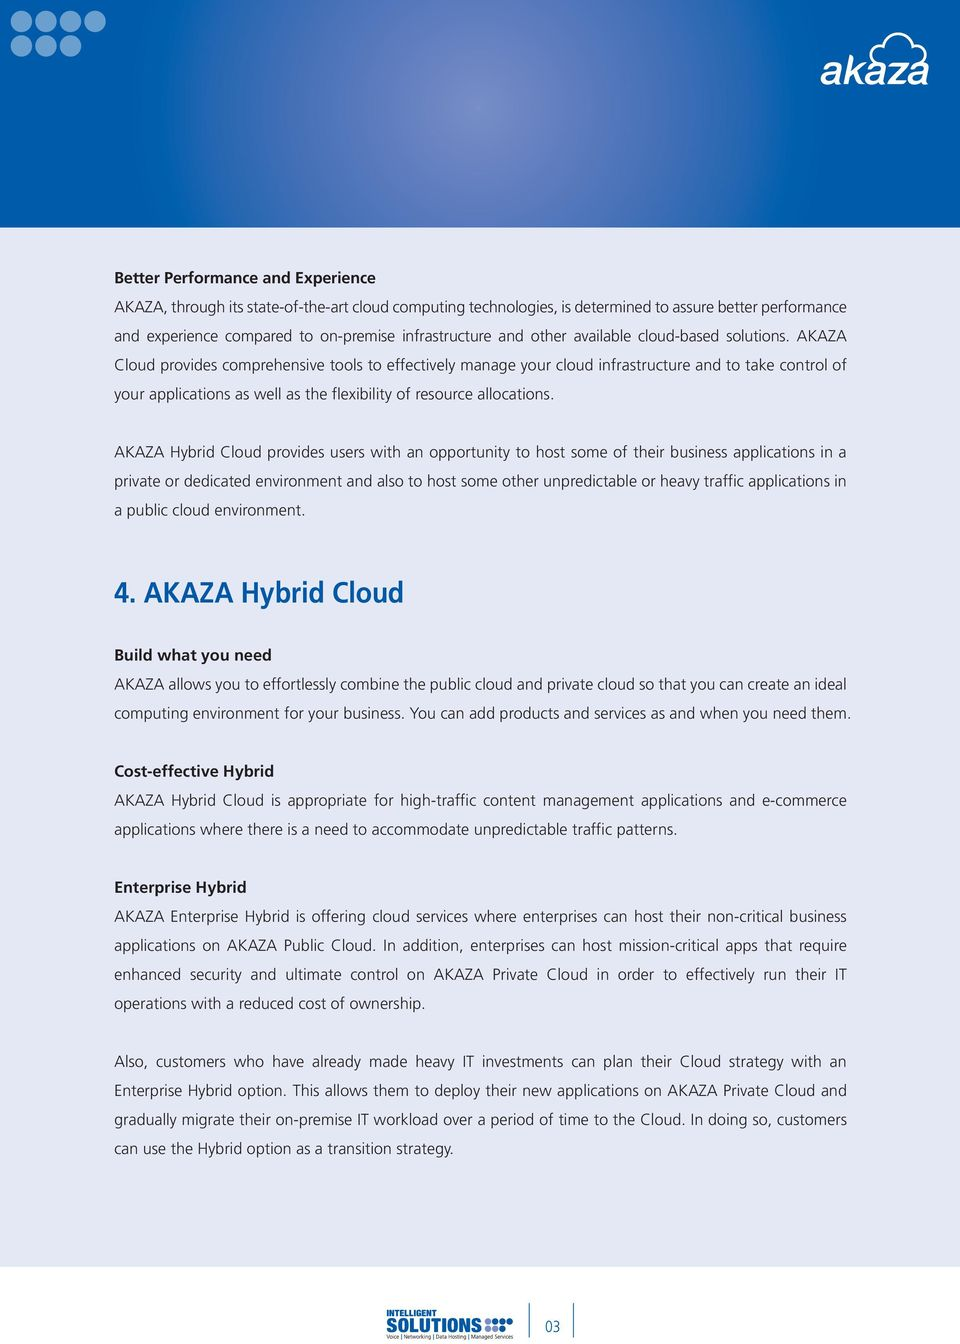 AKAZA Cloud provides comprehensive tools to effectively manage your cloud infrastructure and to take control of your applications as well as the flexibility of resource allocations.